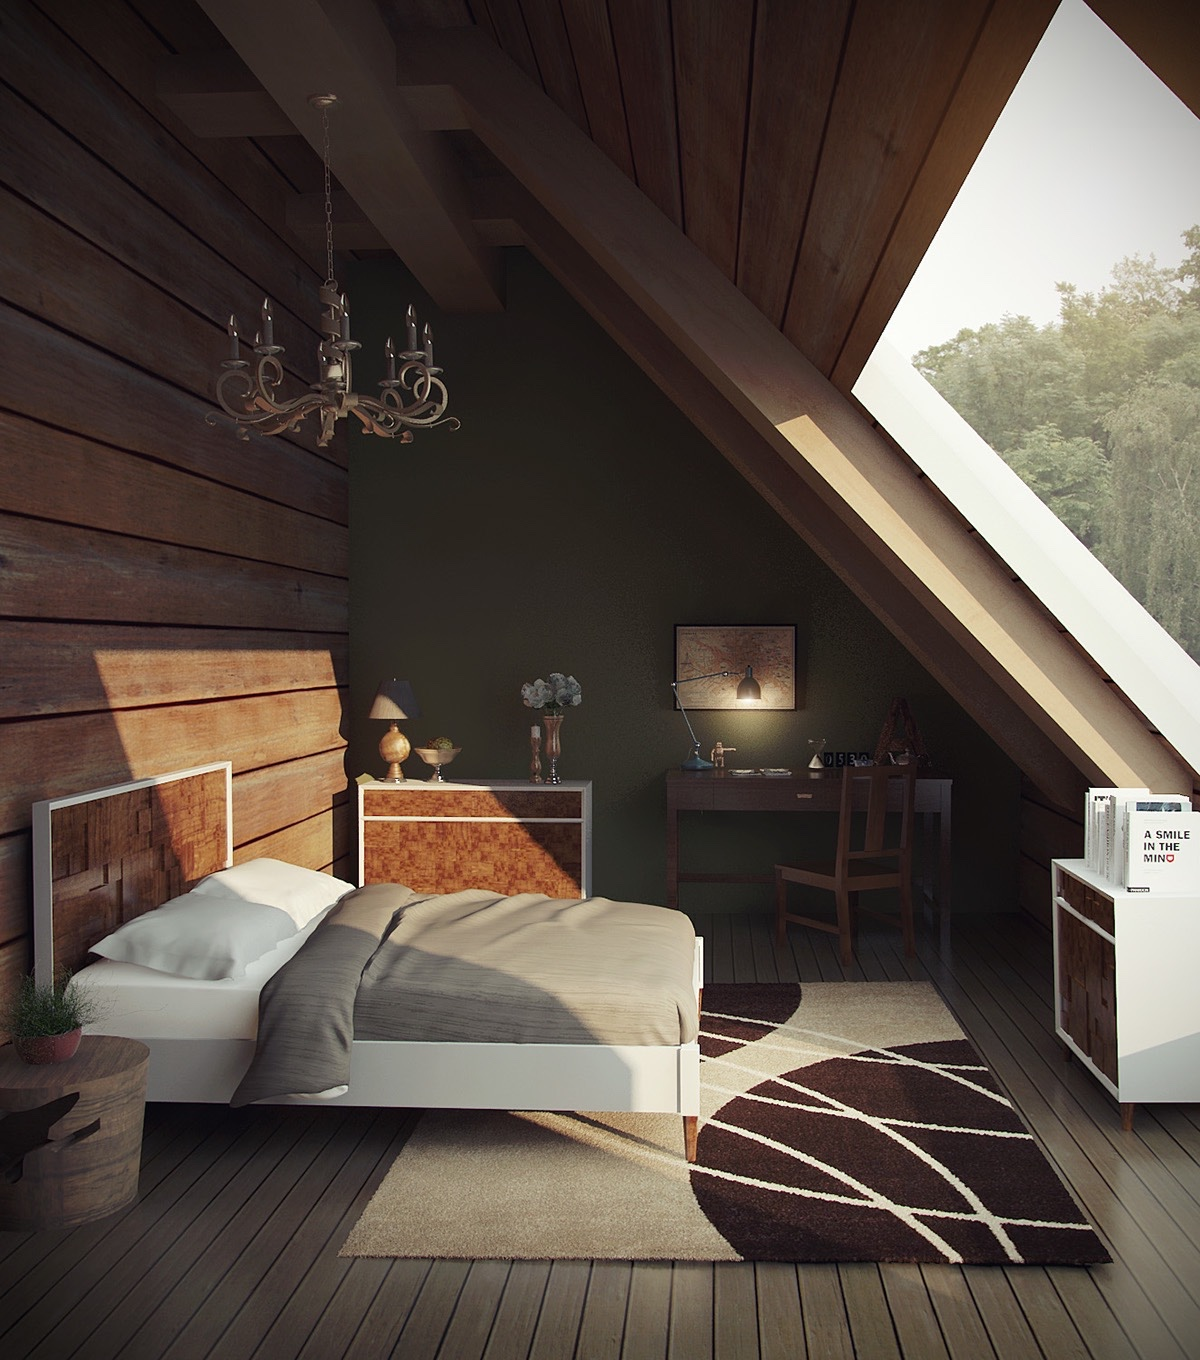 18 loft style bedroom designs ideas design trends for Small loft decor